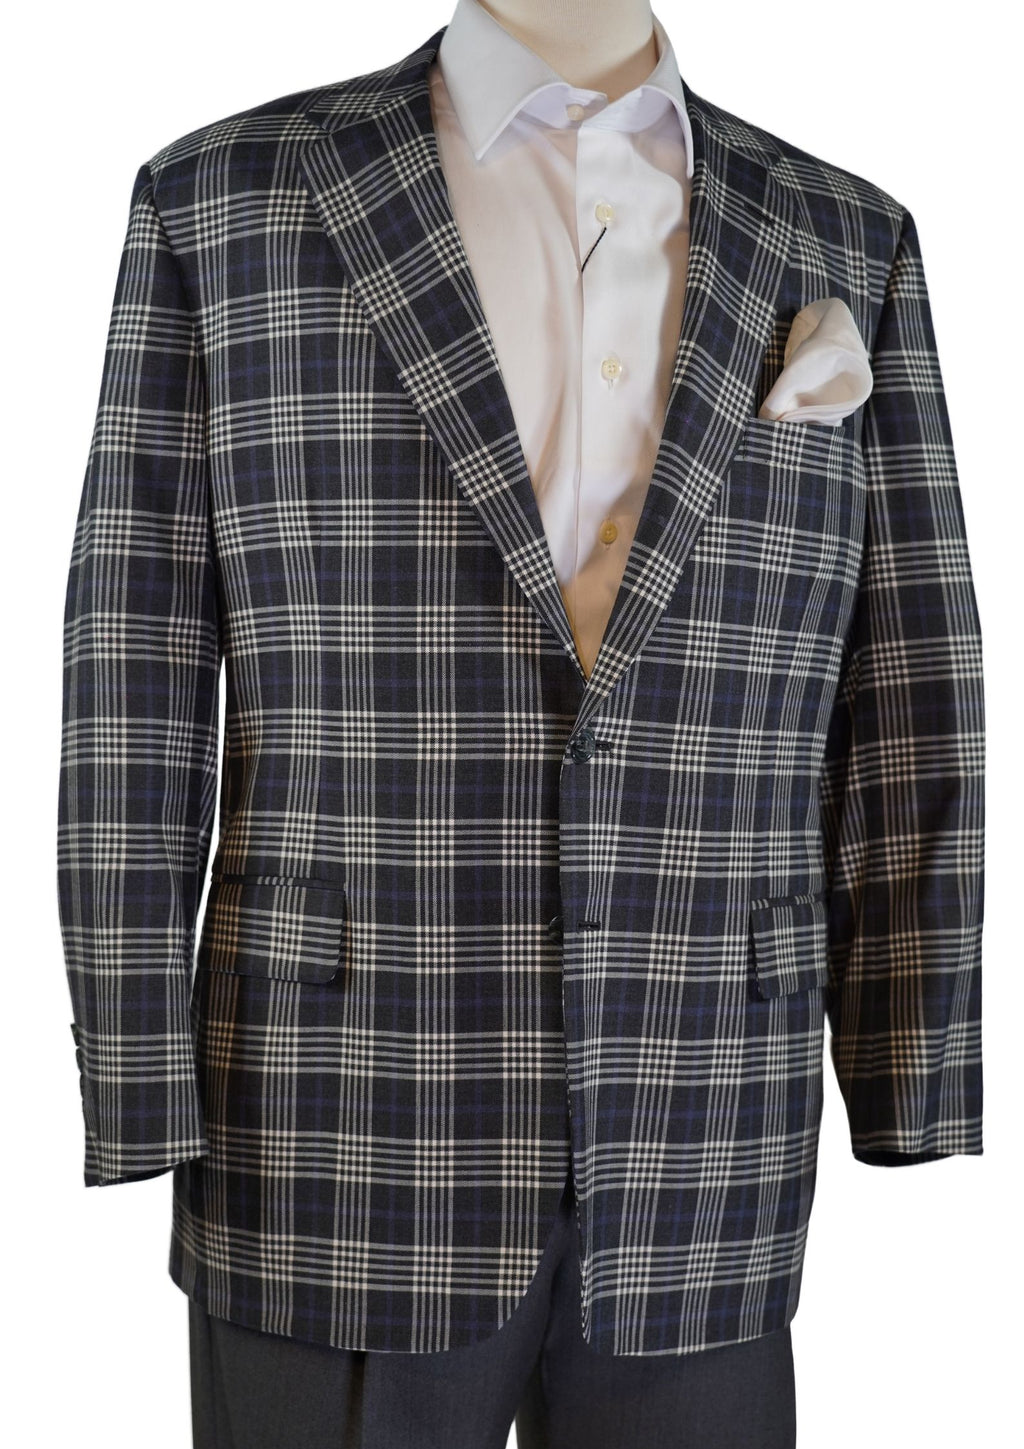 CHARCOAL GREY PLAID WOOL SPORT COAT